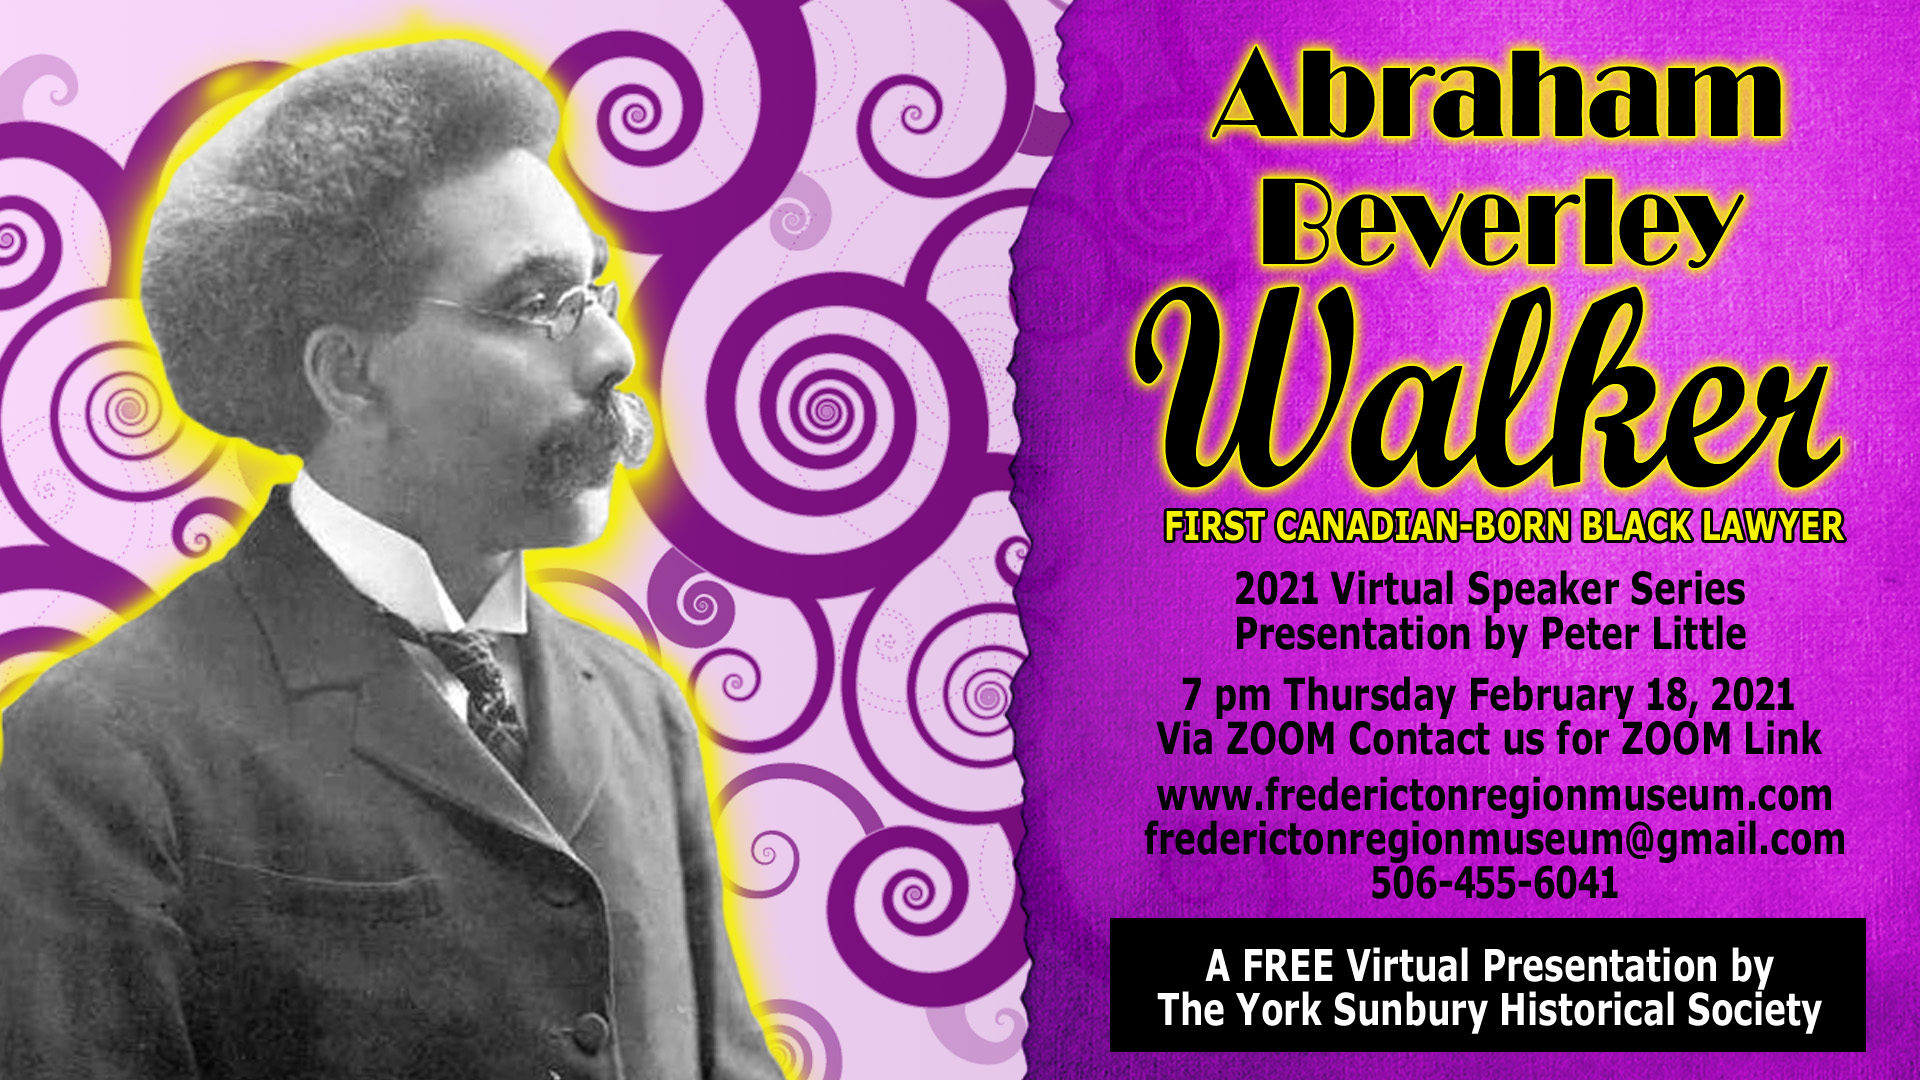 Abraham Beverly Walker First Canadian Born Black Lawyer